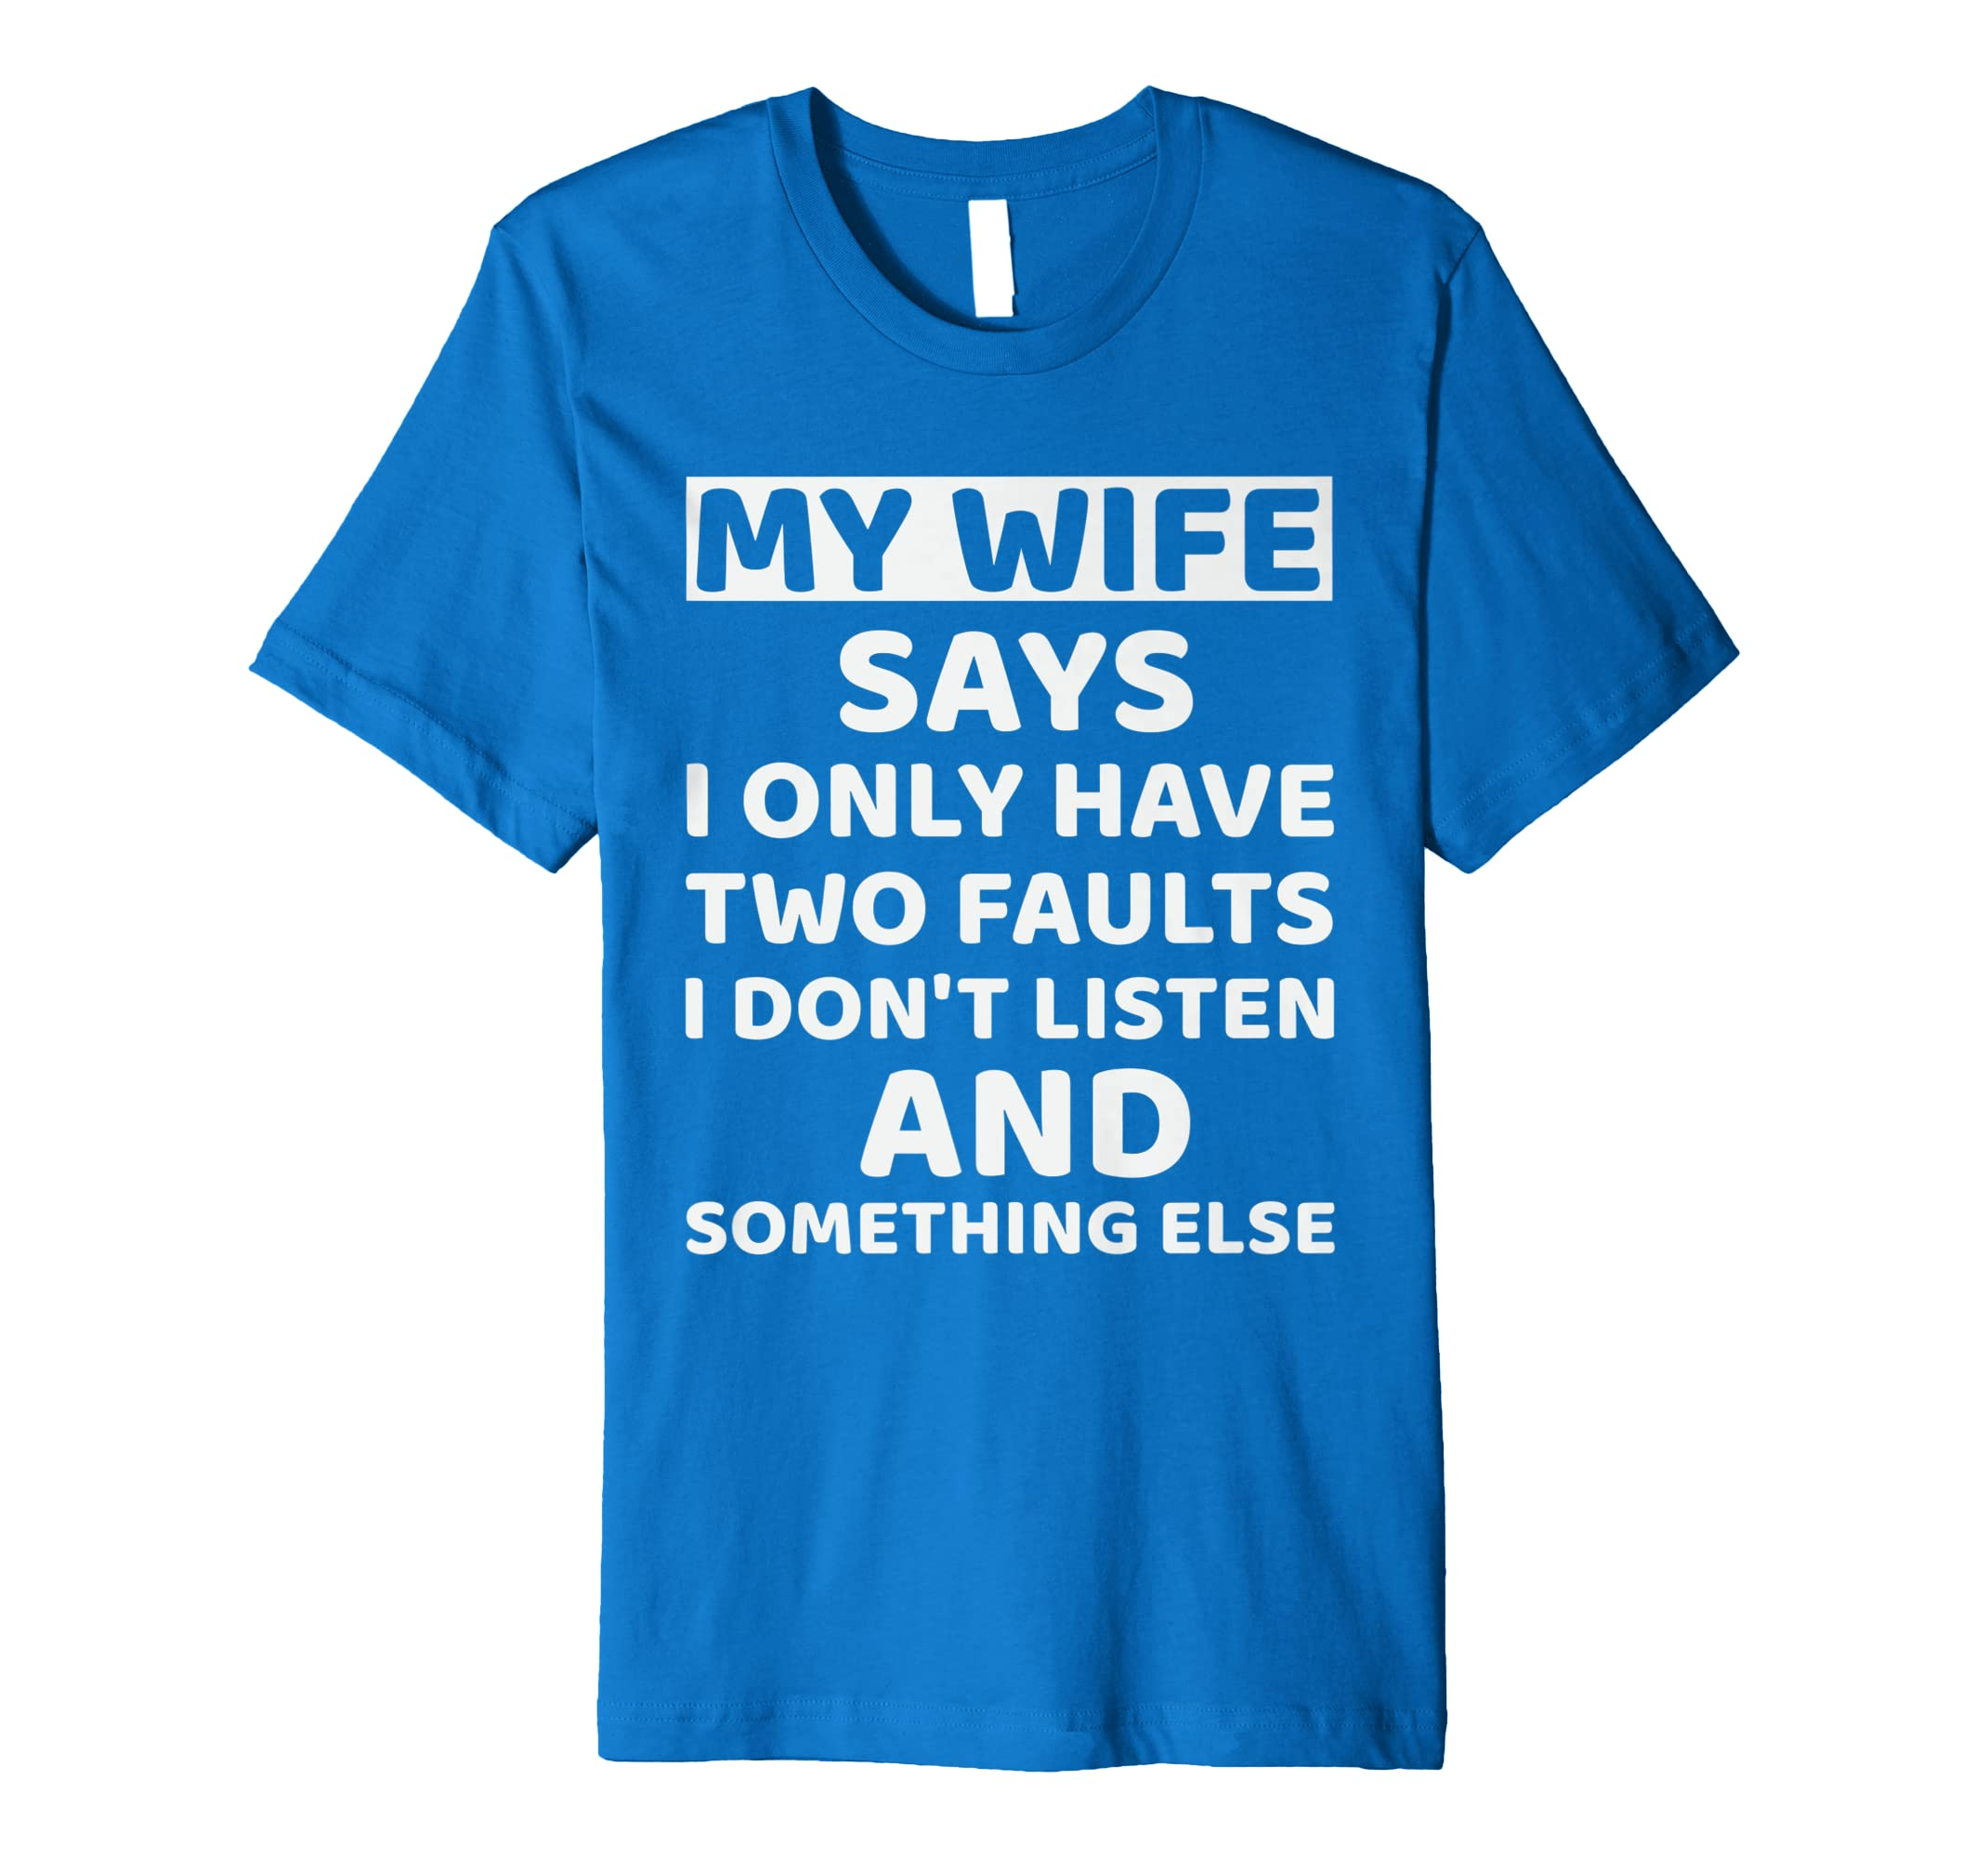 efa19c1c7 My Wife Says I Only Have Two Faults I Don't Listen Tee: Amazon.co.uk:  Clothing